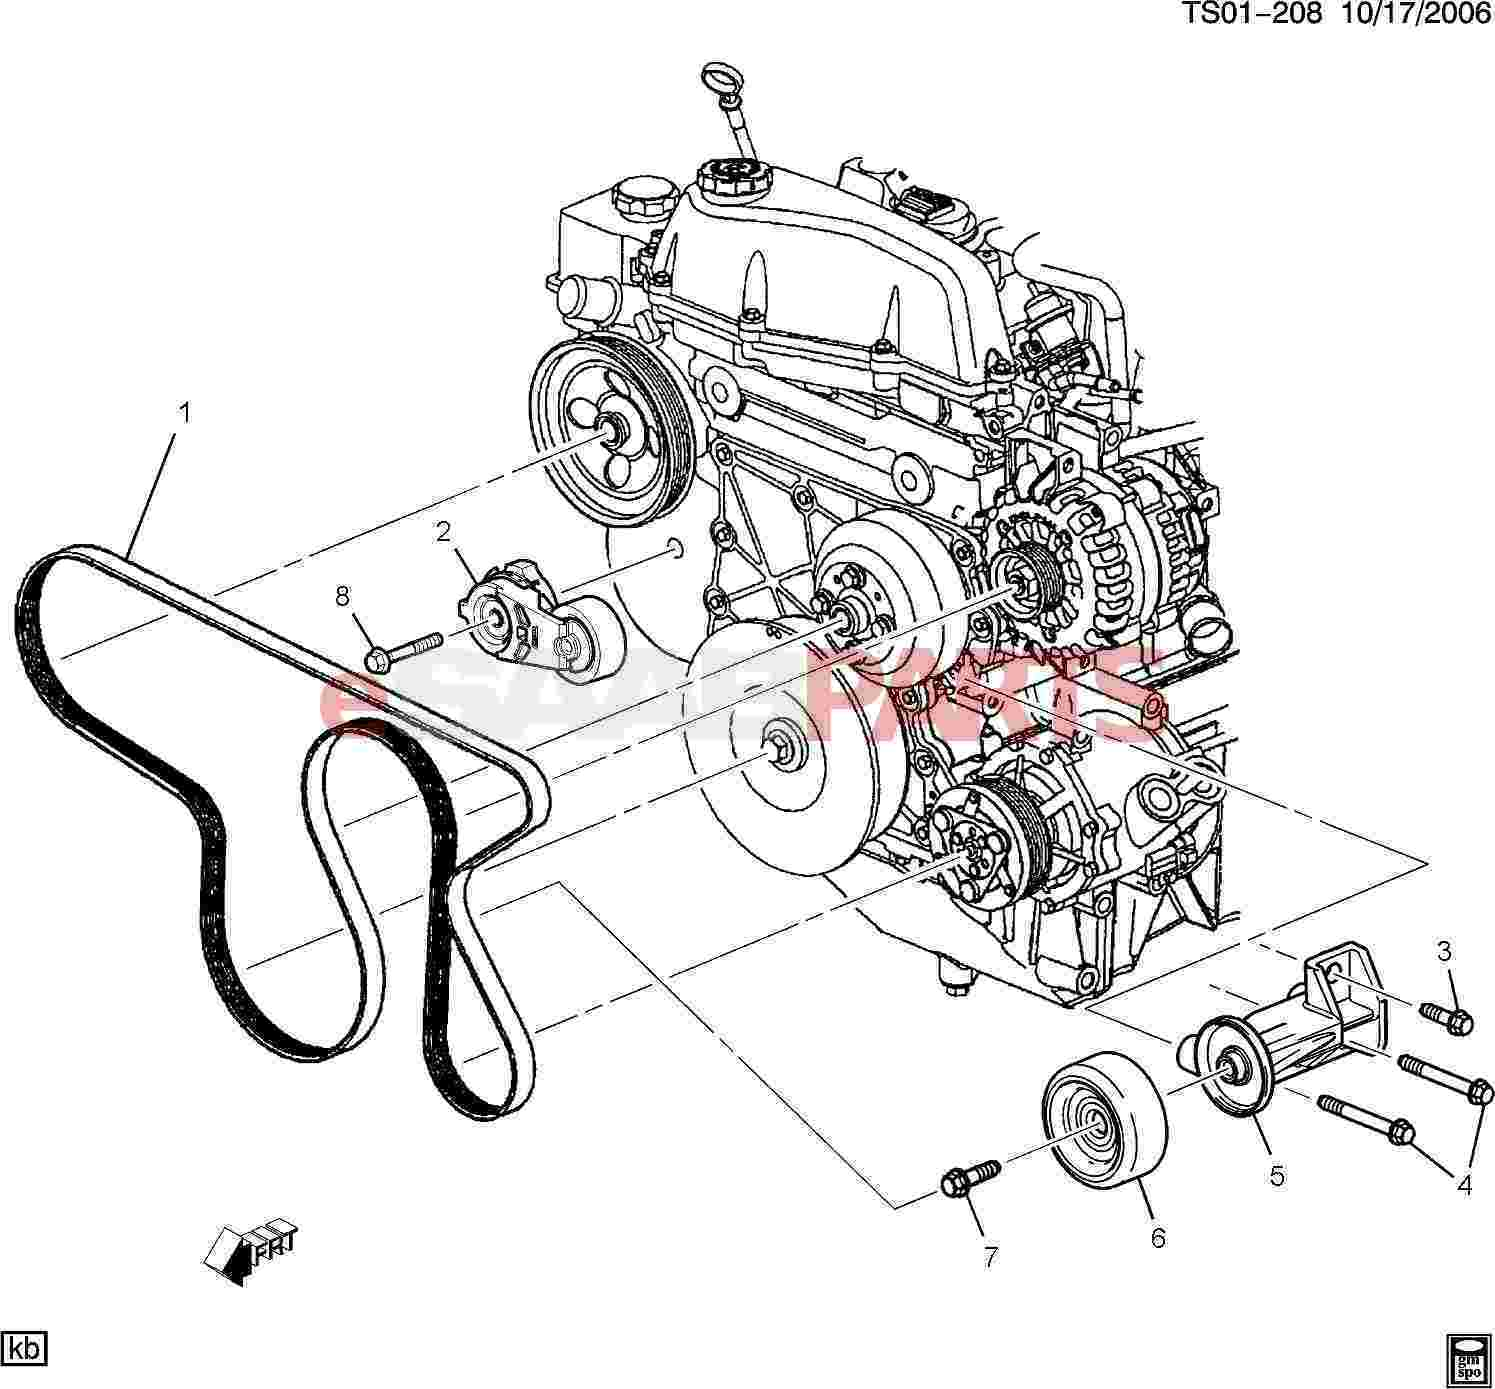 2003 Chevy Trailblazer Wiring Diagram from www.esaabparts.com